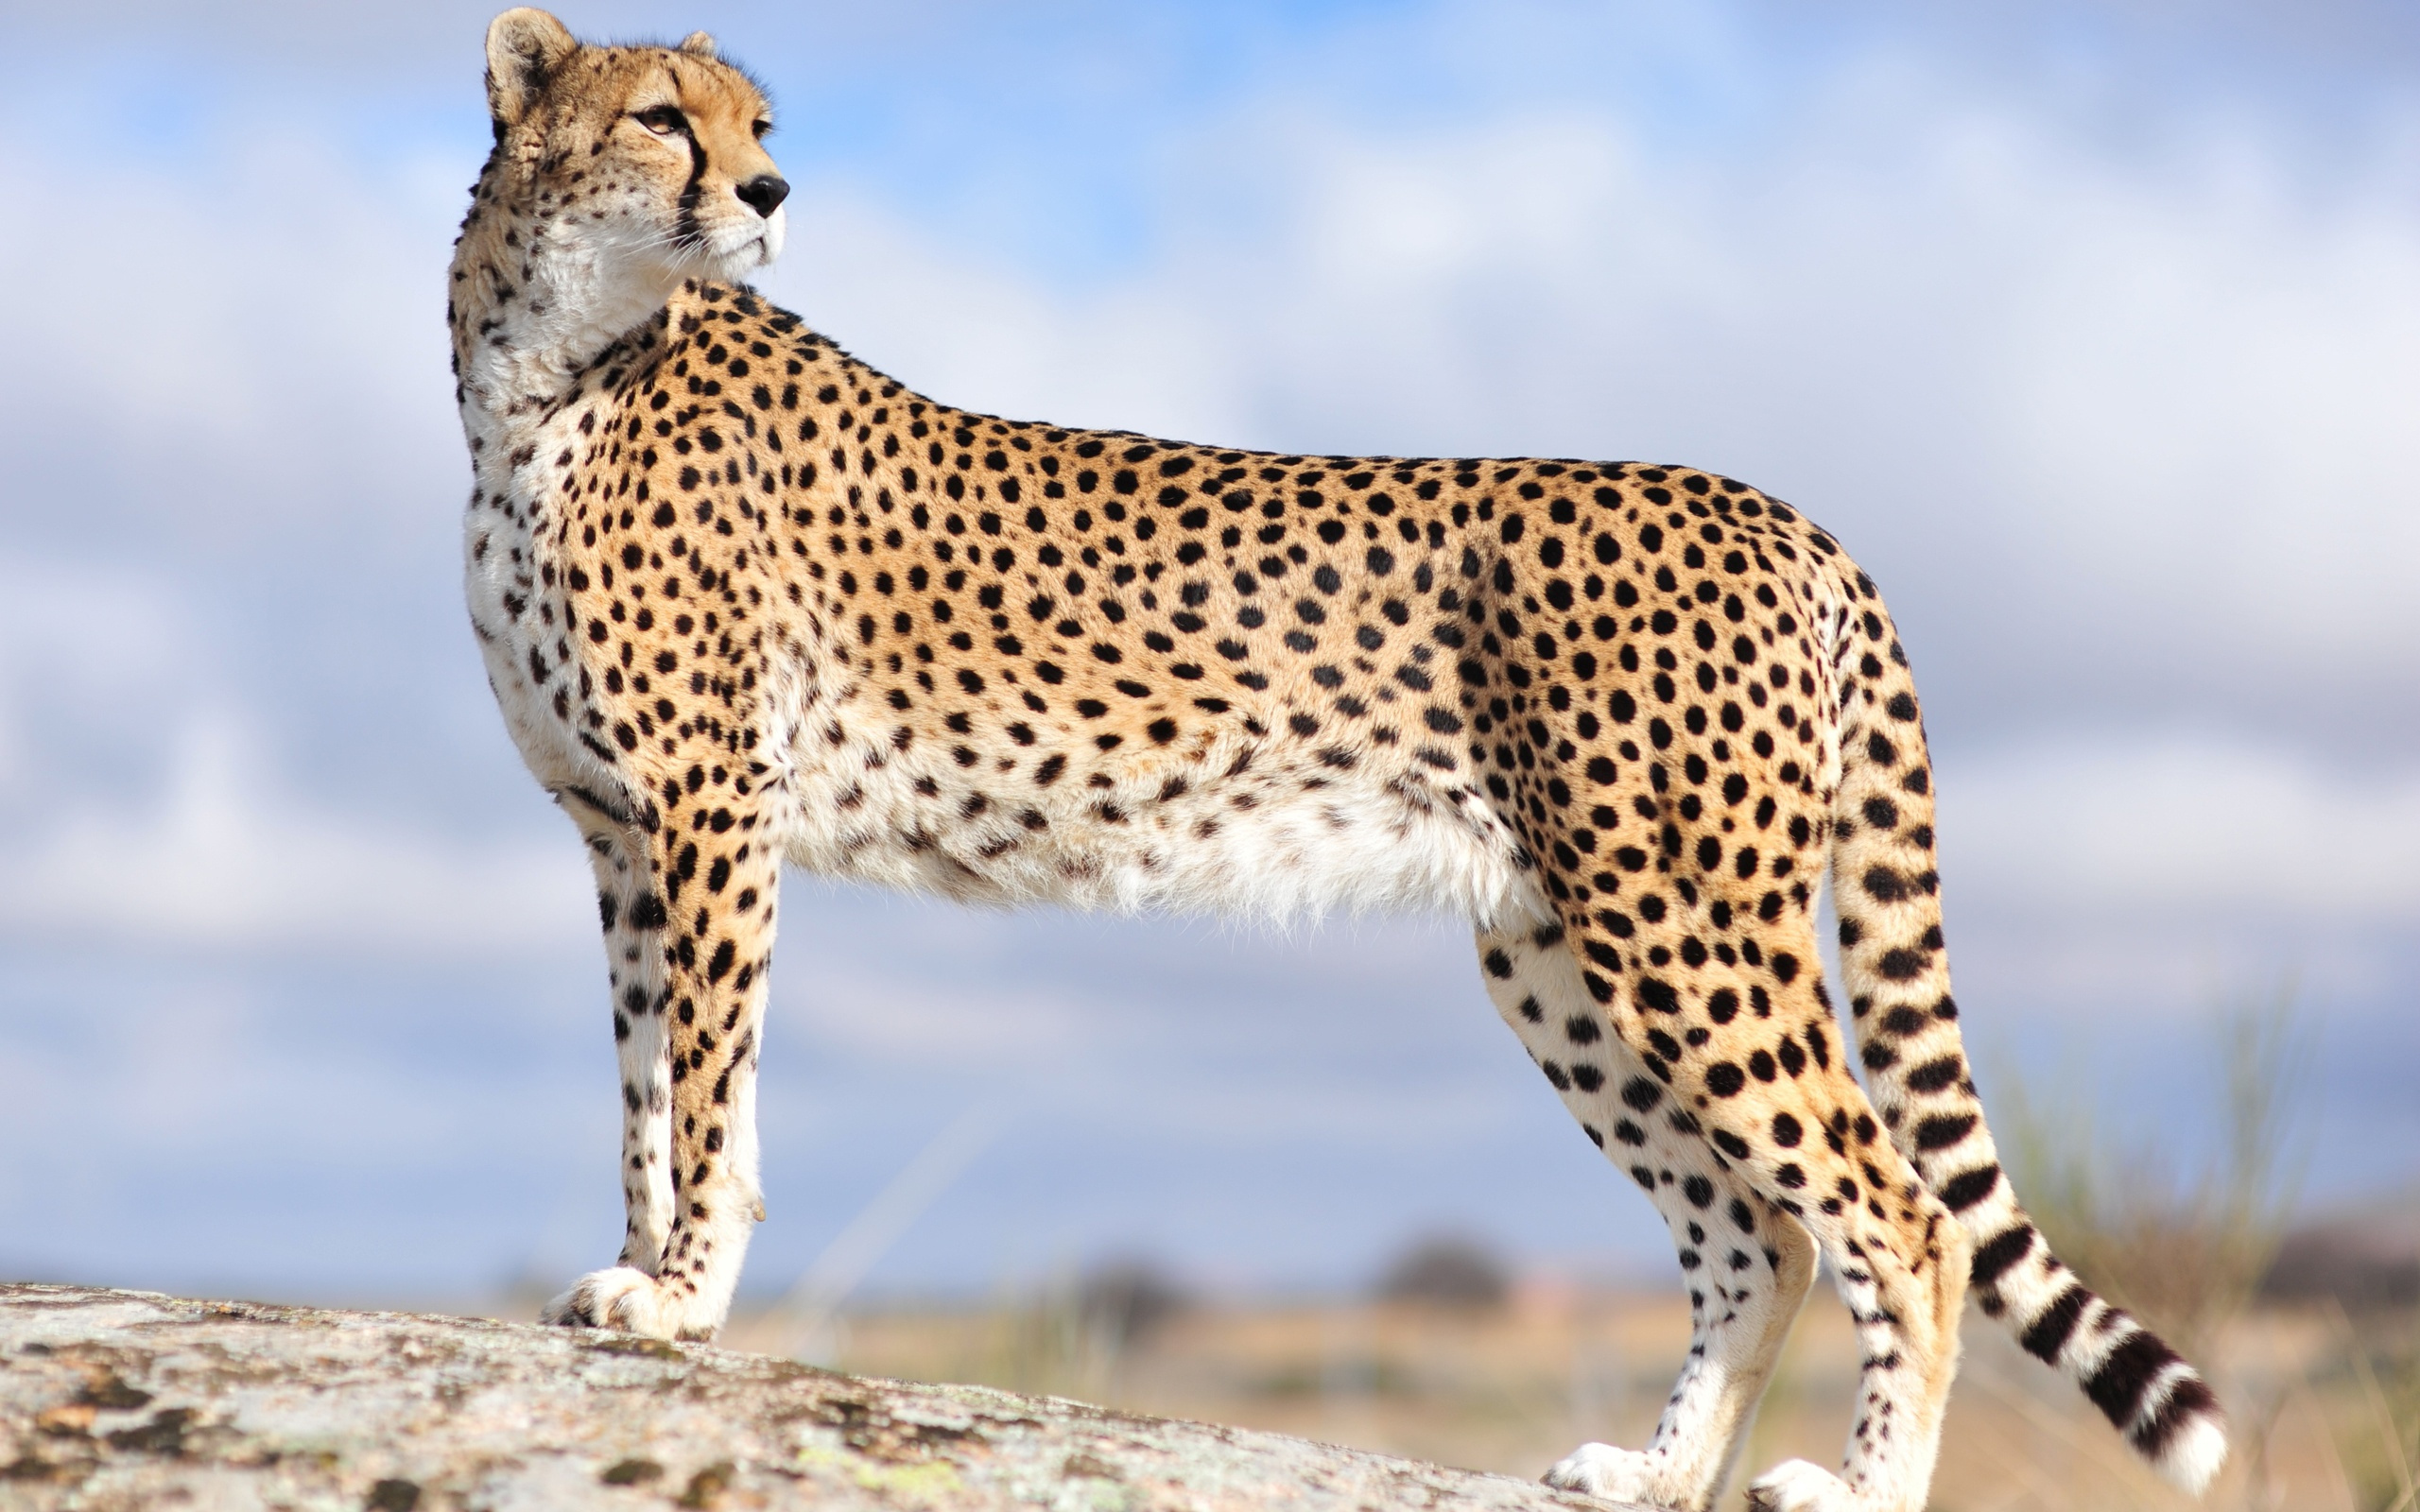 Brave Cheetah on a Hill